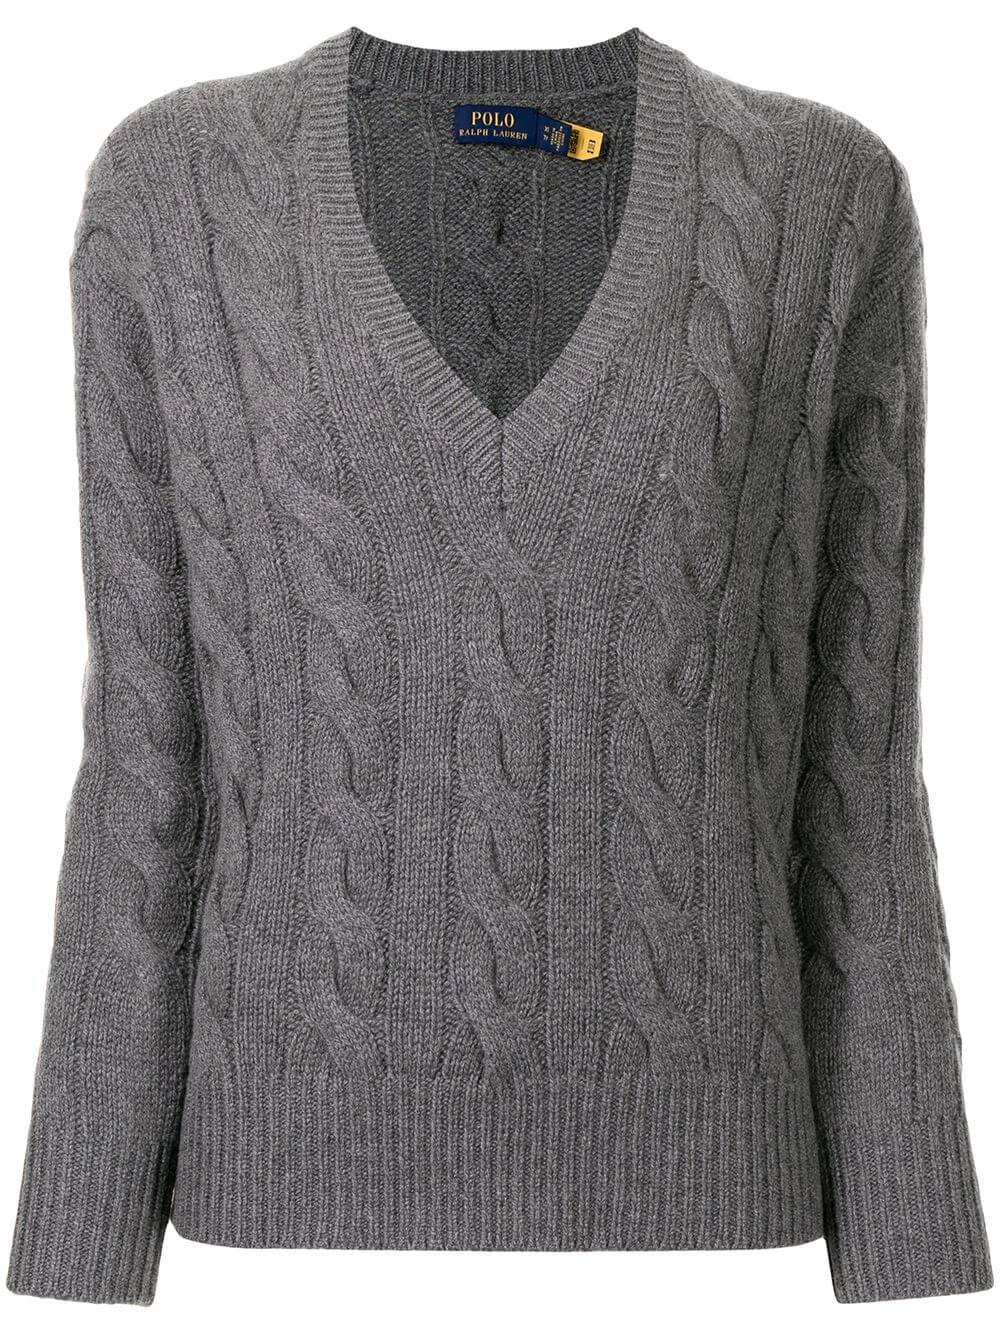 V- Neck Cable Knit Sweater Item # 211811192004